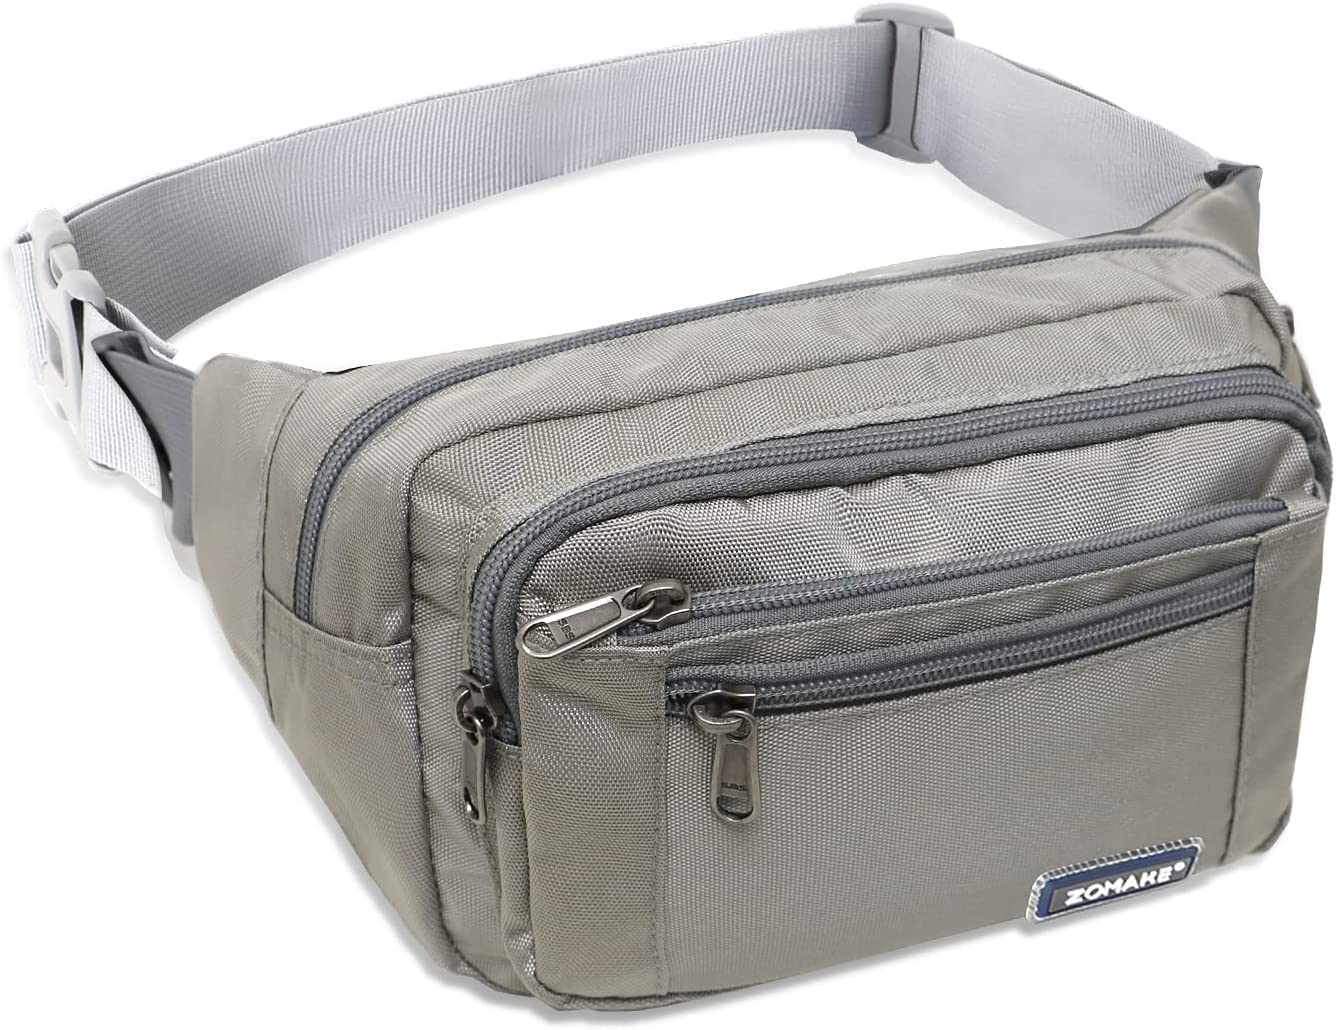 ZOMAKE Large Fanny Pack for Women Bag Resistant Water Men Waist Max 44% OFF OFFicial